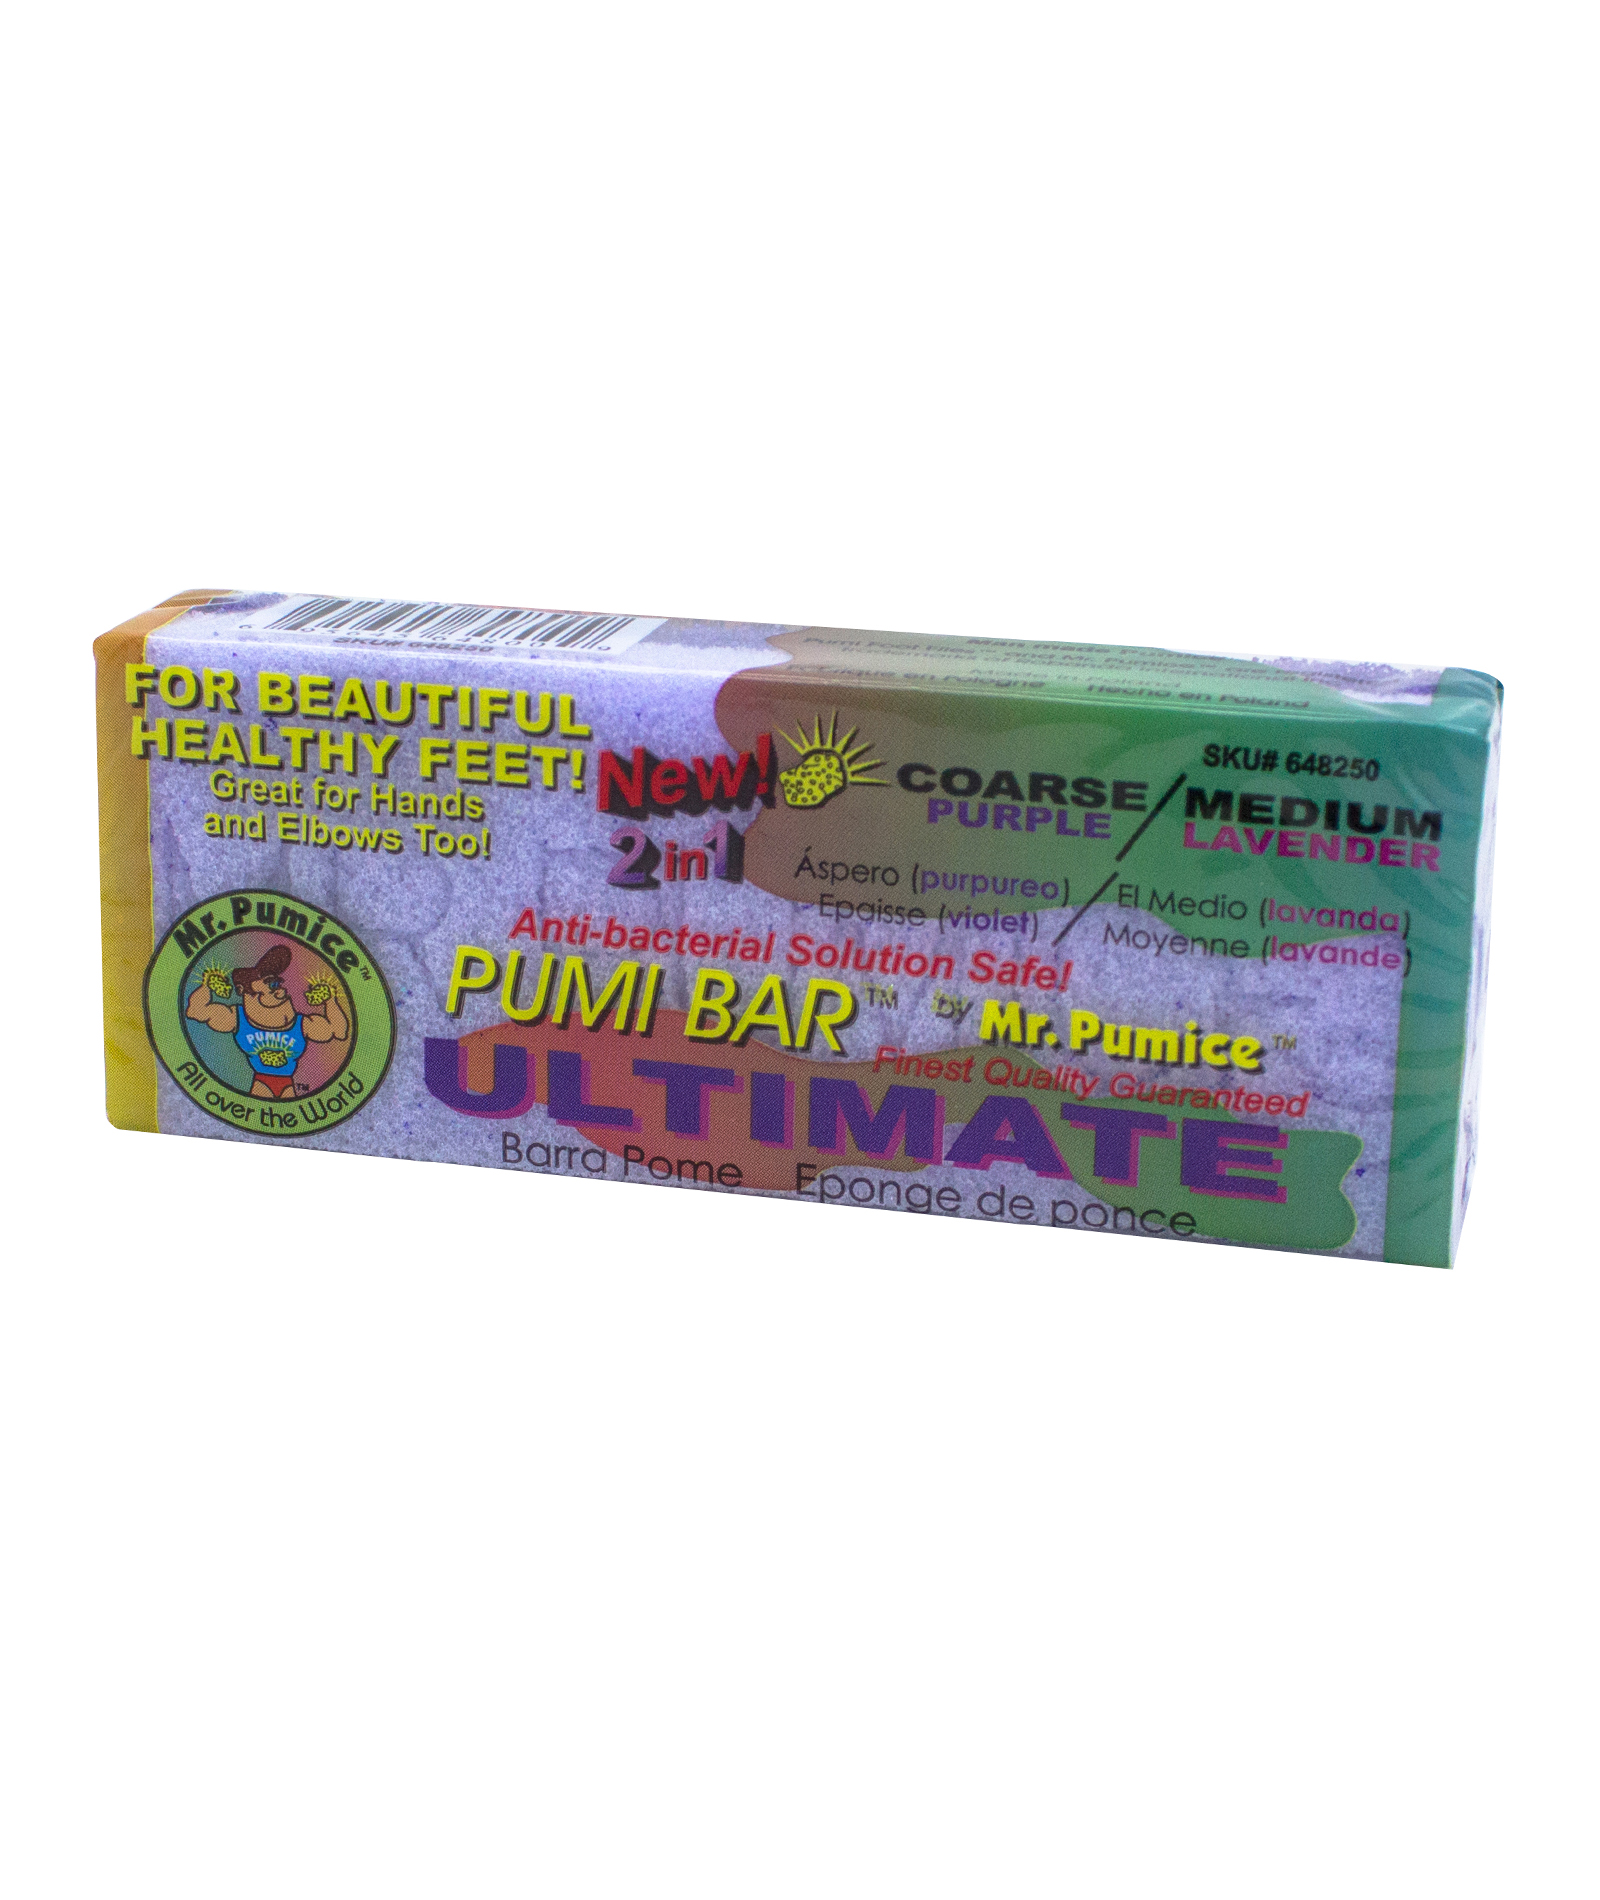 MR PUMICE PB400-12 PURPLE ULTIMATE PUMI BAR, 2 SIDED. EXTRA